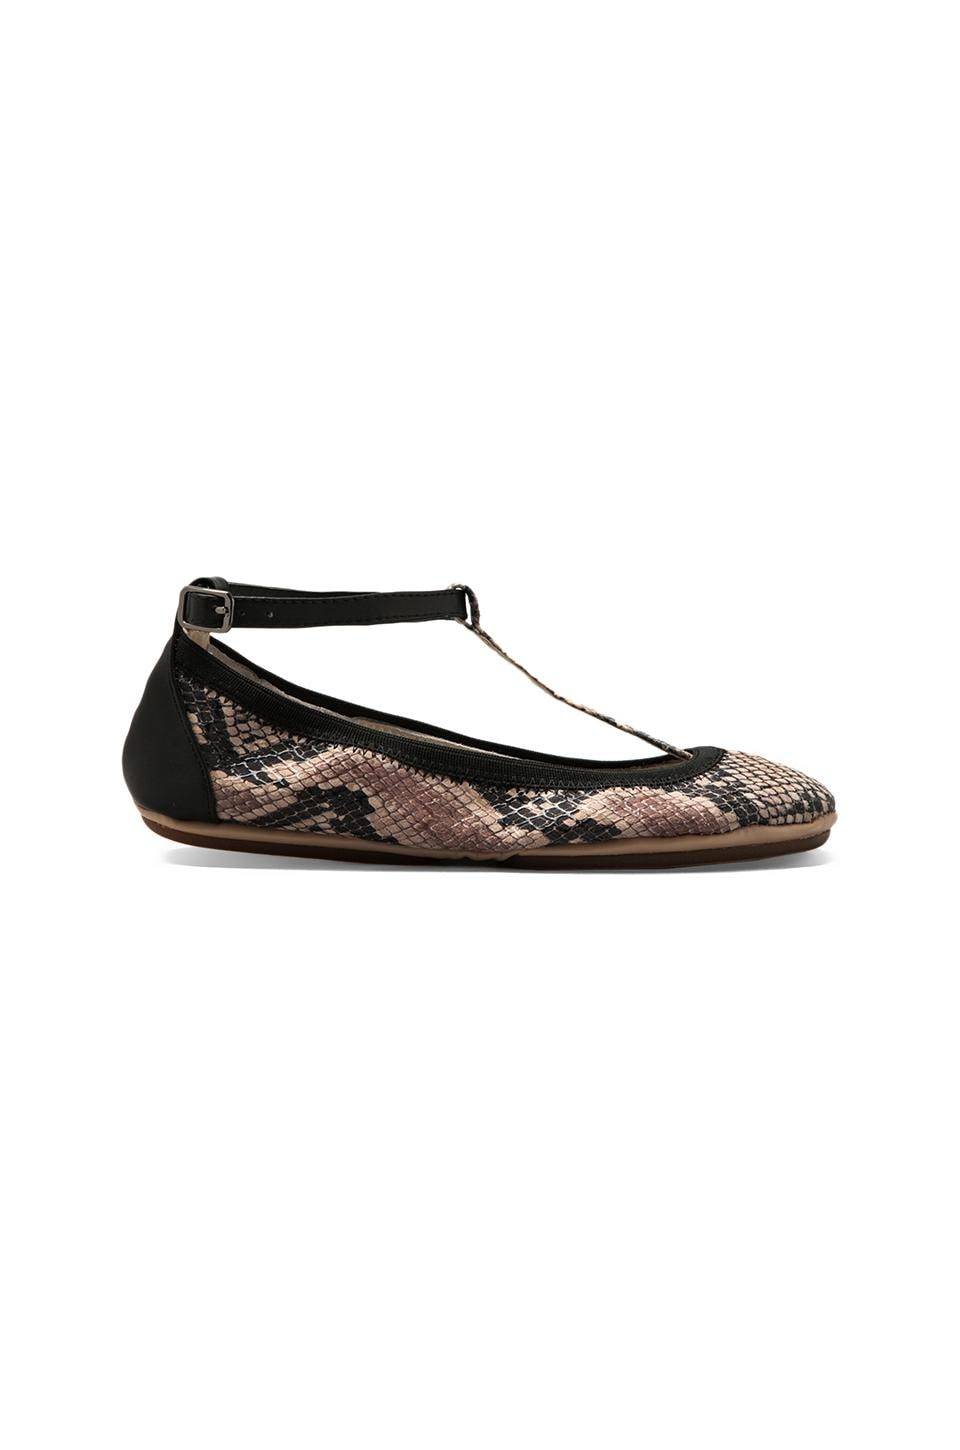 Yosi Samra T Strap Leather Ballet Flat in Serpent/Black